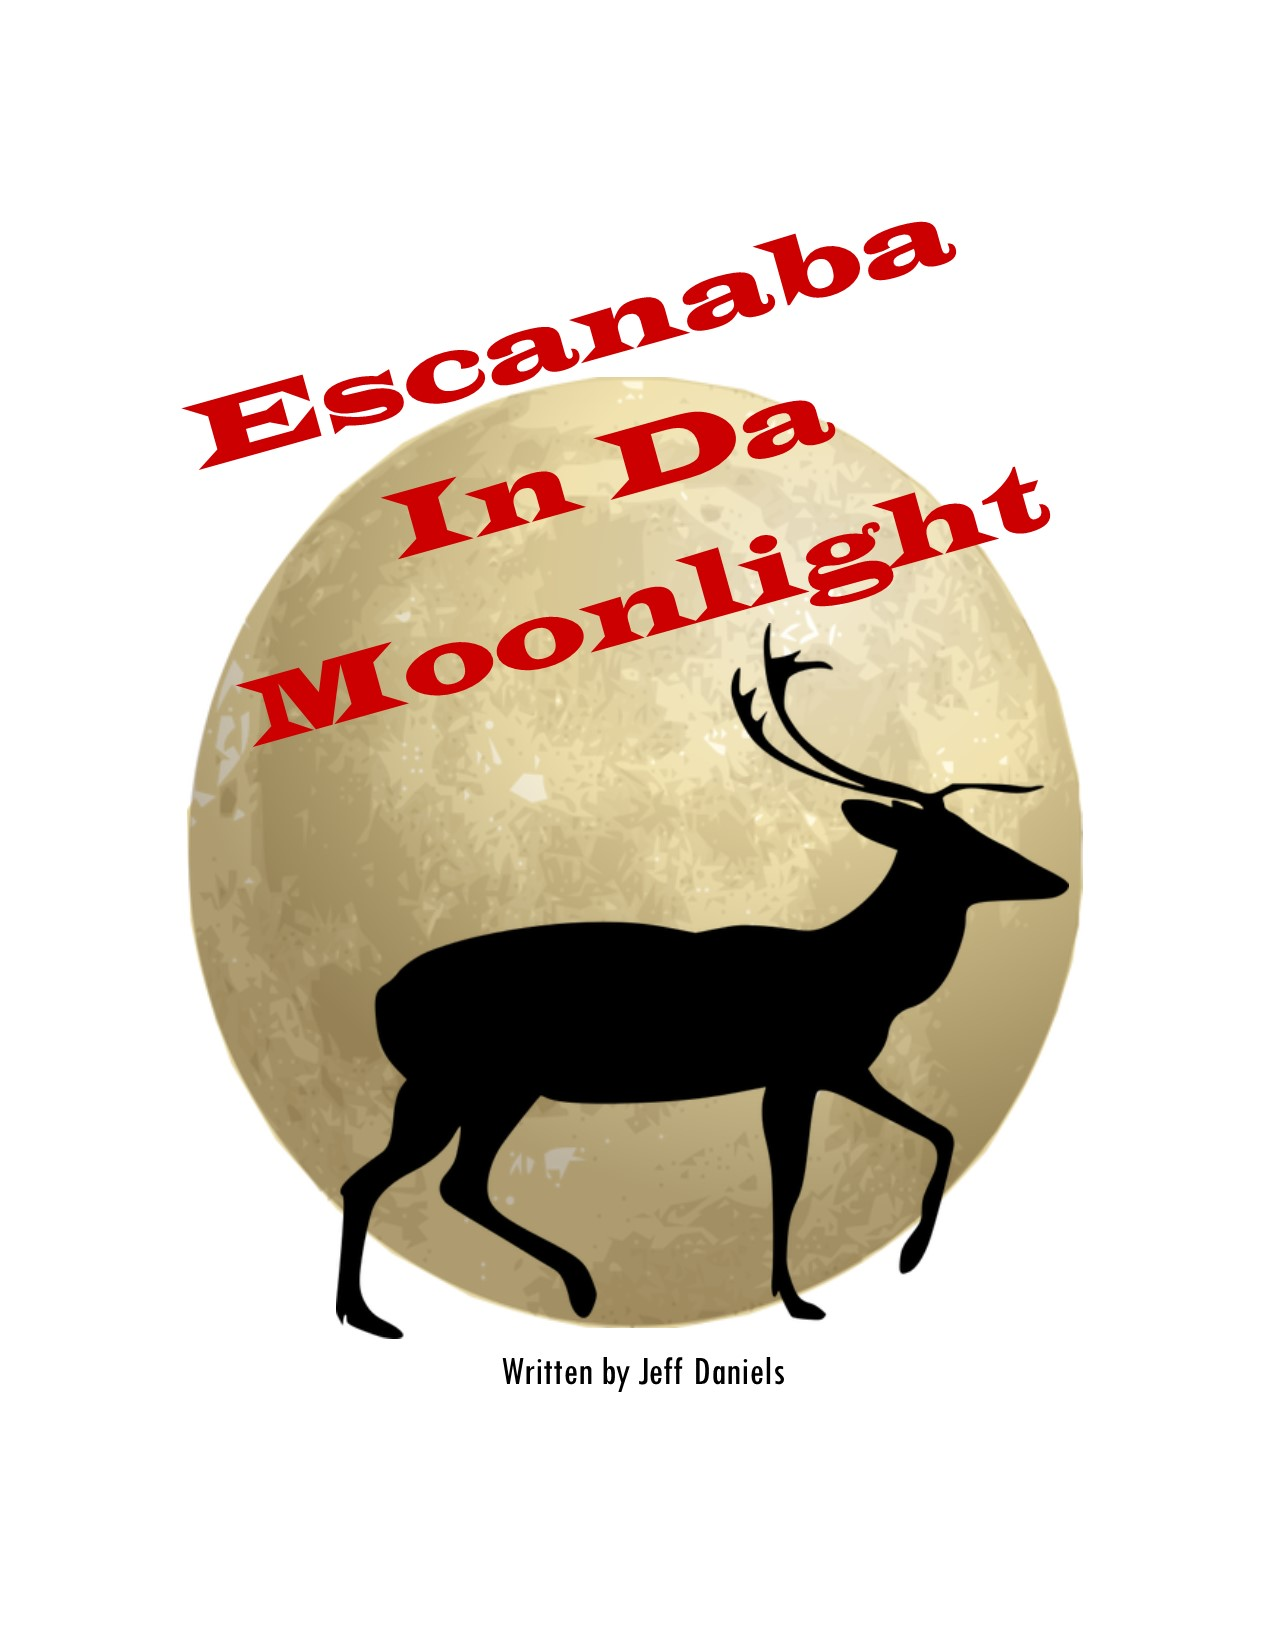 The Barn Theatre Presents: Escanaba in Da Moonlight ...